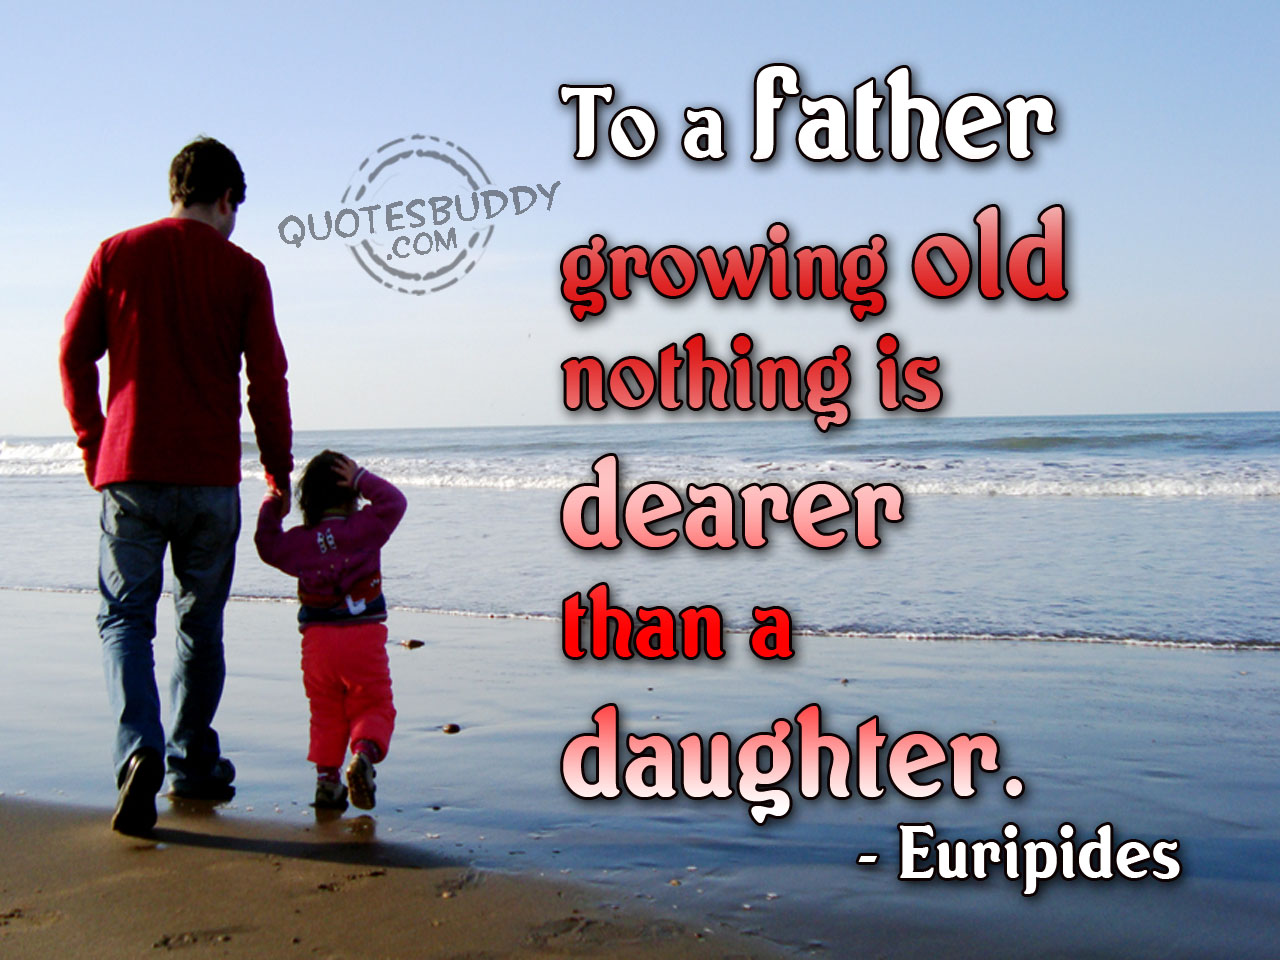 Inspirational Quotes About Fathers And Daughters